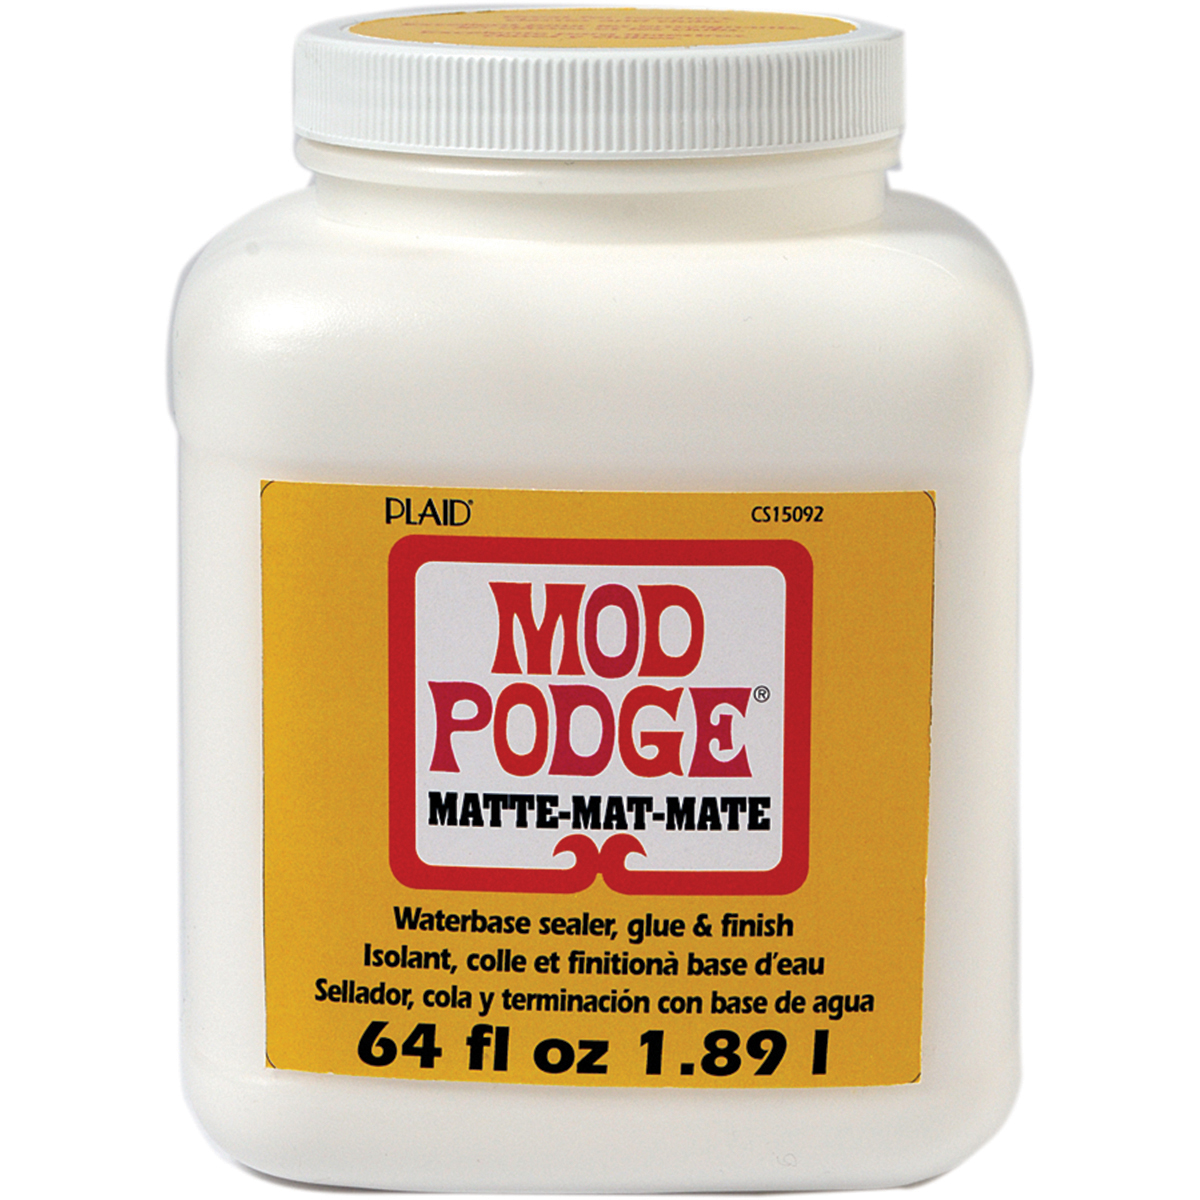 Mod Podge Matte, Glue, Sealer and Finish for Decoupage by Plaid, 64 oz.